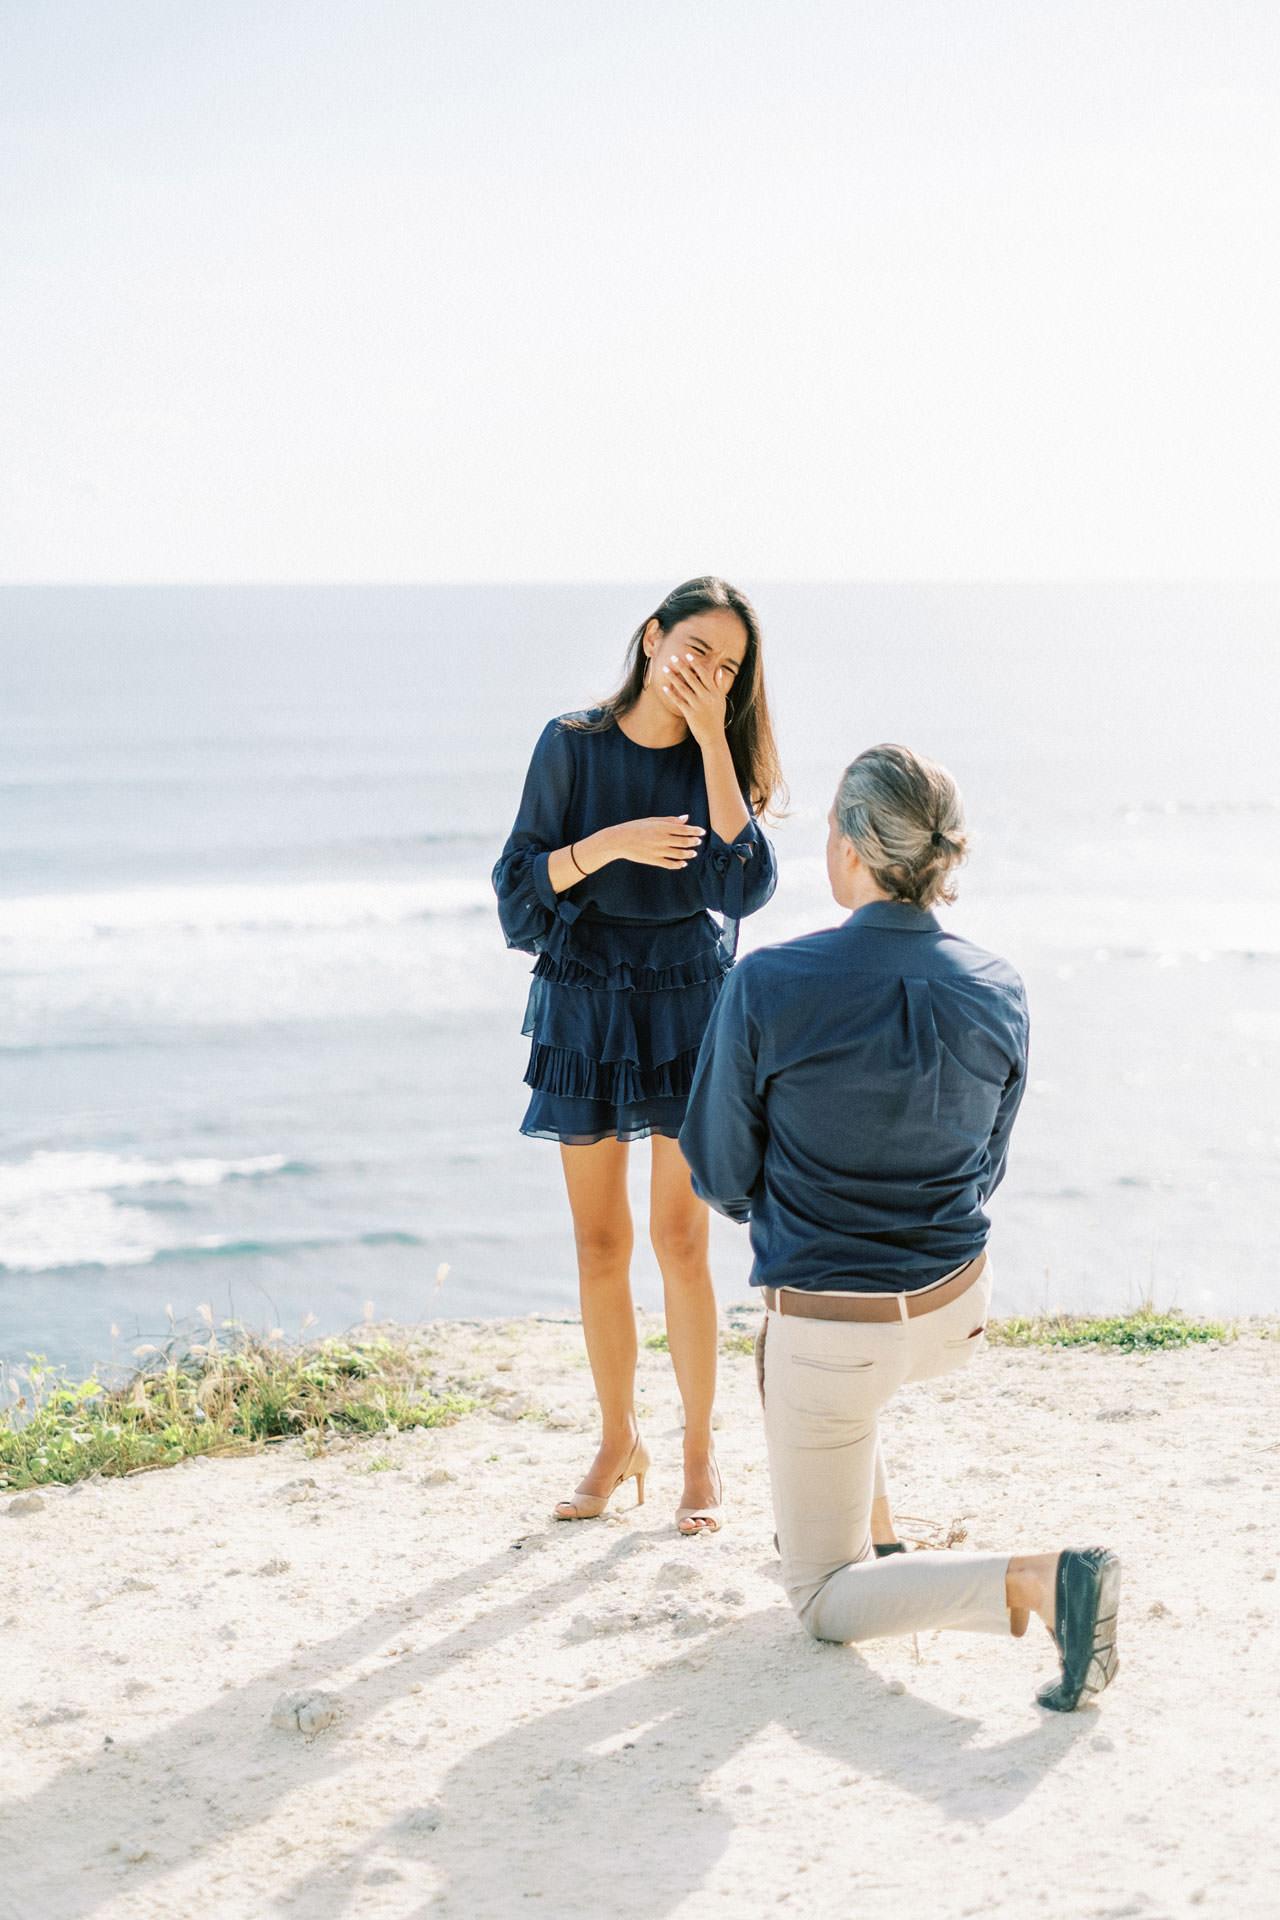 Bali's Beach Marriage Proposal with a Proposal Video! 5